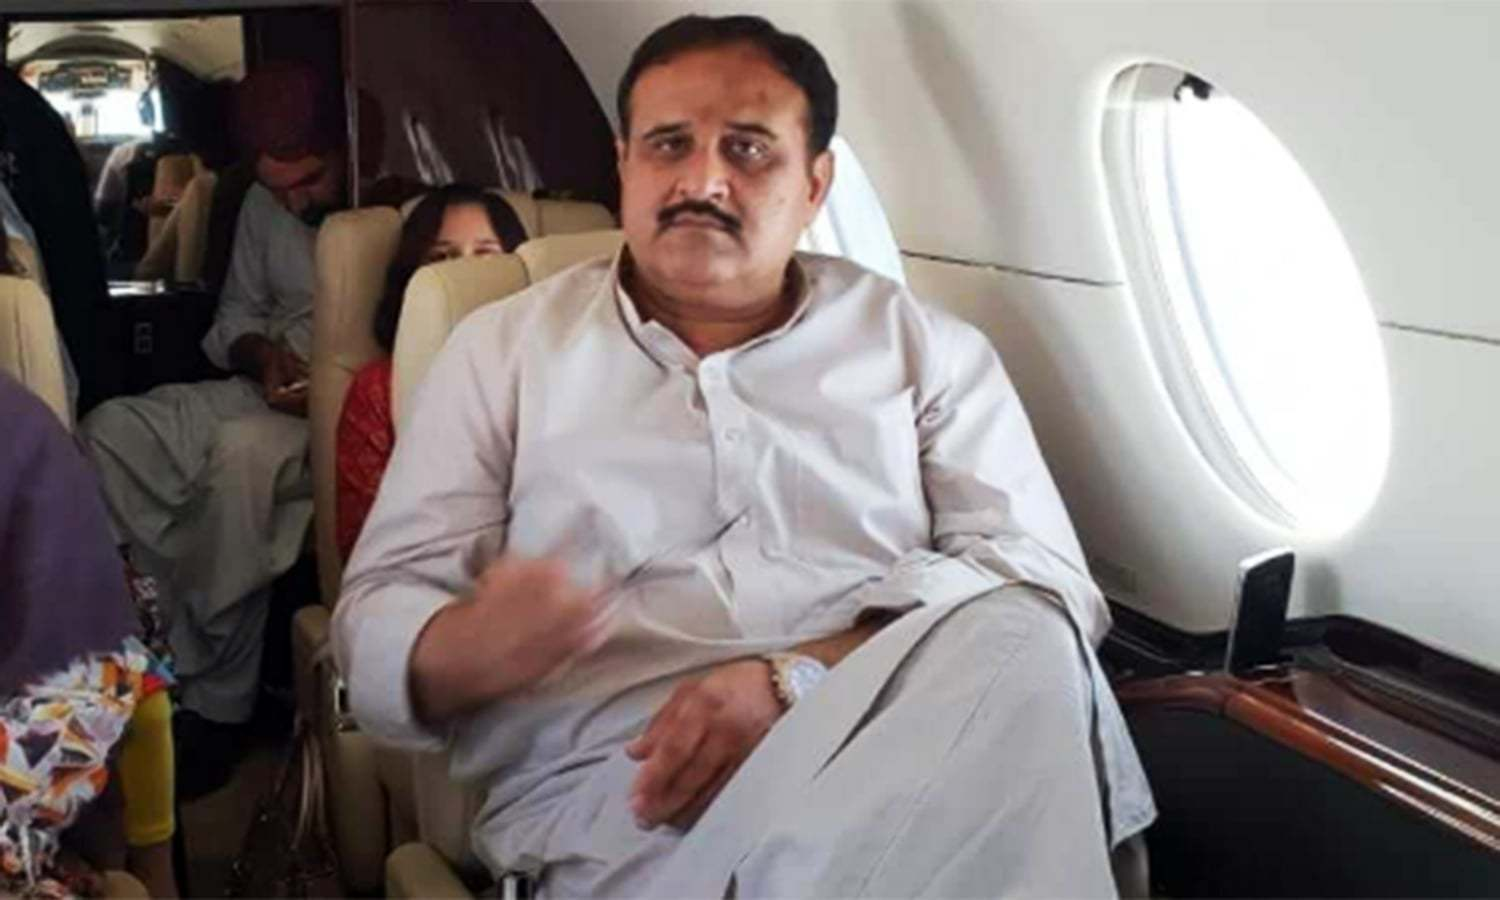 The chief minister's office under Usman Buzdar has reduced its expenditures by 40 per cent as compared to those incurred under his predecessor Shehbaz Sharif between 2017-18. — DawnNewsTV/File